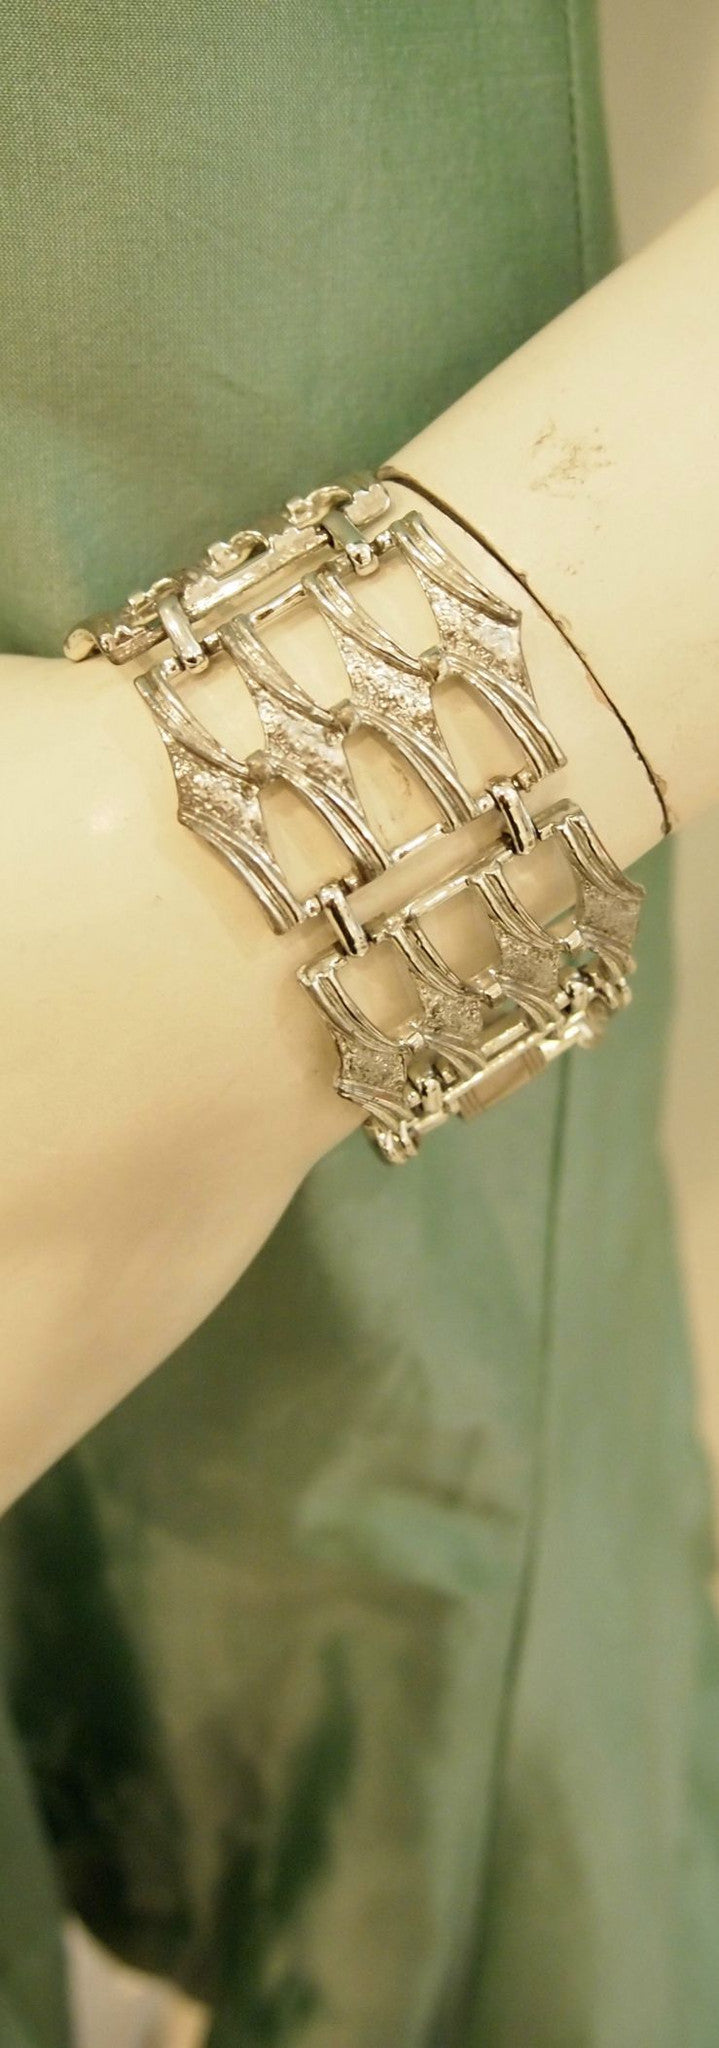 Wonderful Weave Statement Vintage Bracelet